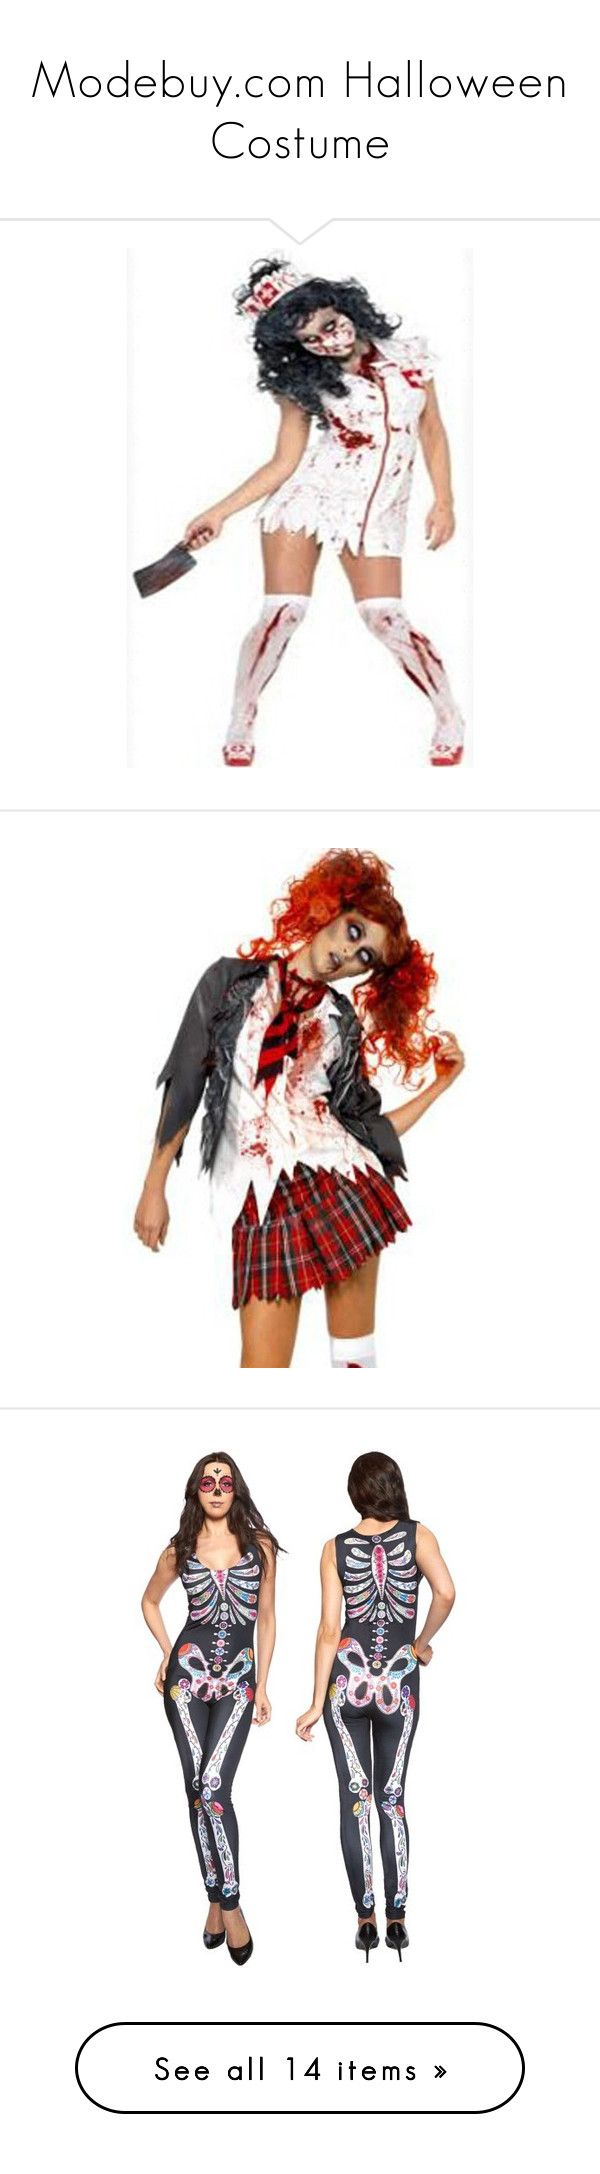 """Modebuy.com Halloween Costume"" by modebuy ❤ liked on Polyvore featuring modebuy, costumes, white nurse costume, living dead costume, adult costumes, zombie costume, nurse costume, schoolgirl costume, zombie school girl costumes and zombie school girl"